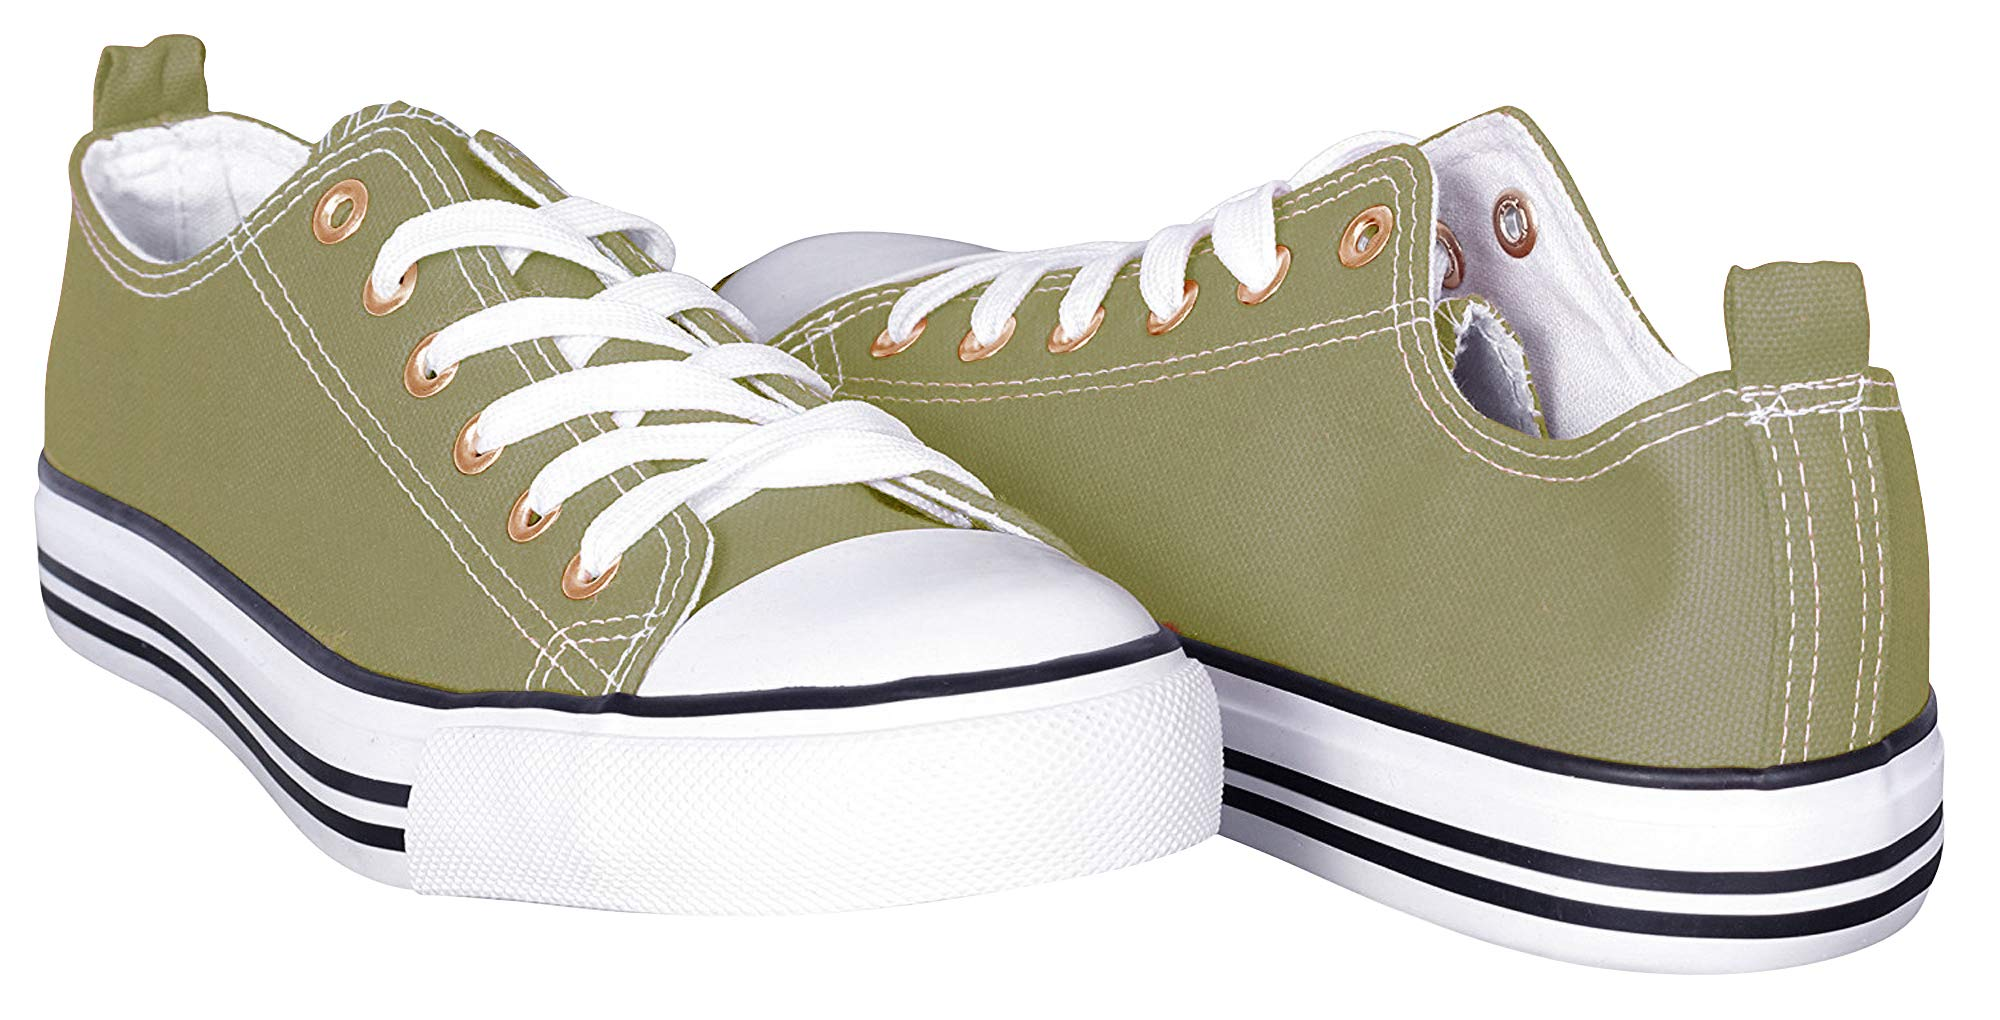 8c58122c940c3 Shop Pretty Girl Women's Sneakers Casual Canvas Shoes Solid Colors ...